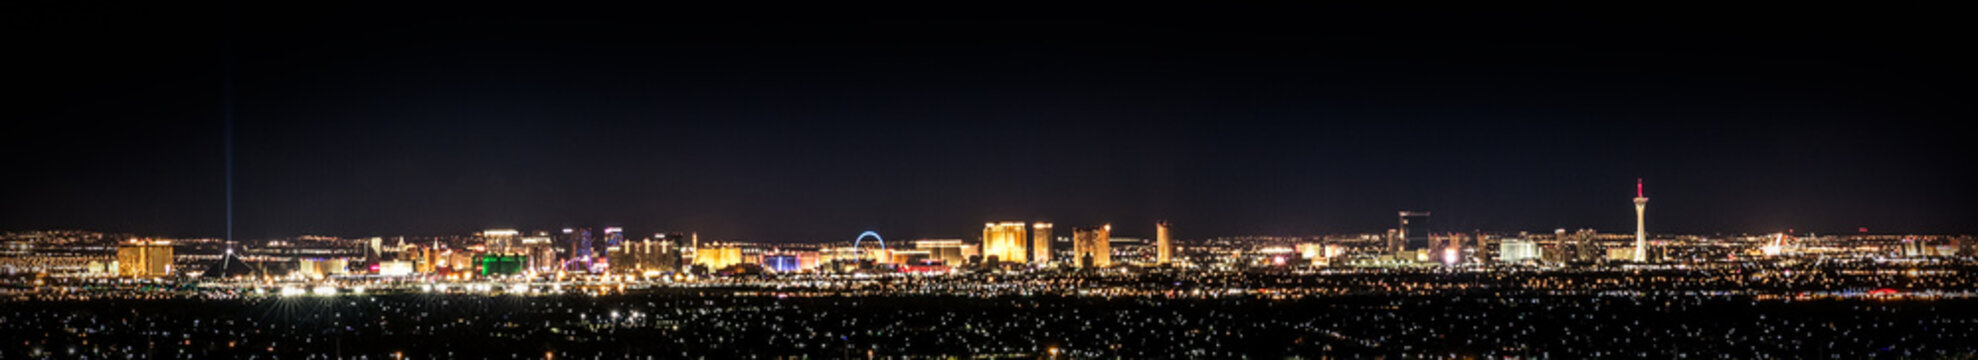 Vegas In Color, cityscape at night with city lights